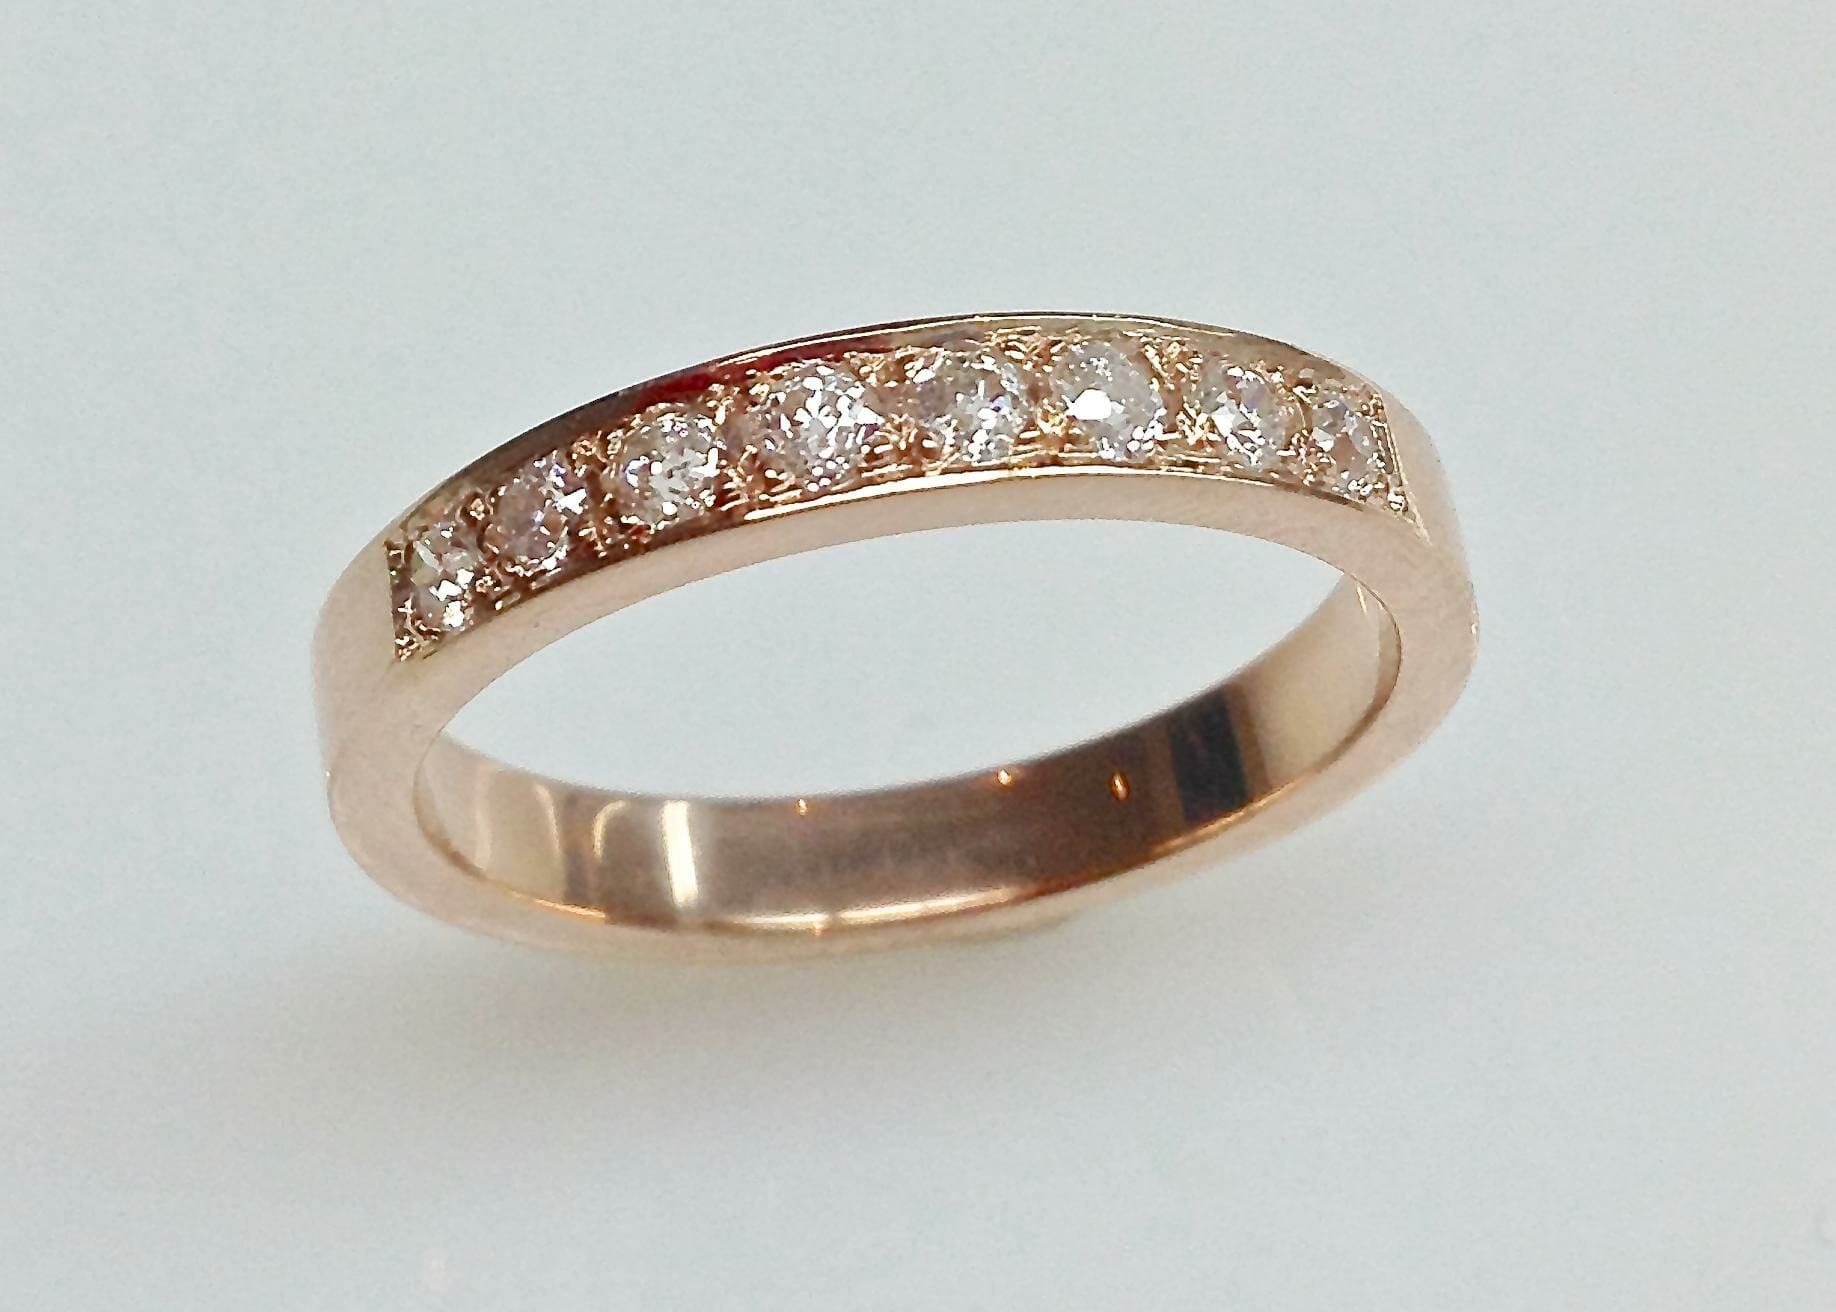 Rose Gold Wedding Ring with Pave Diamonds